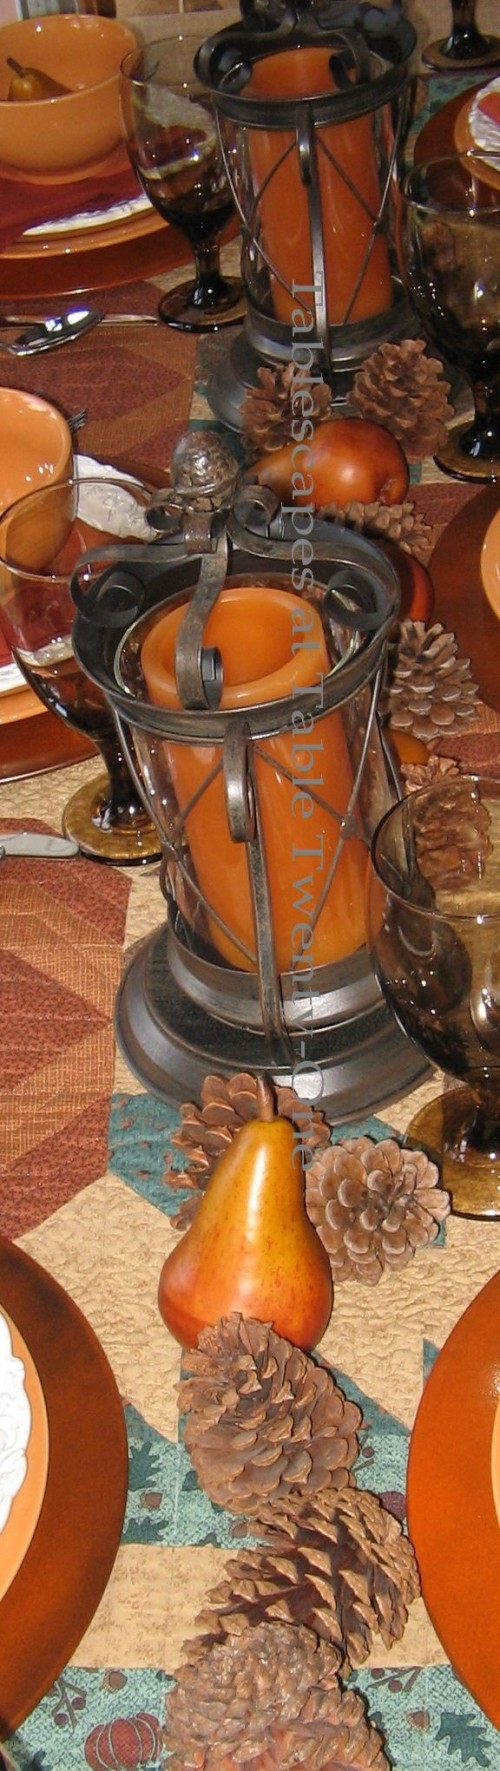 Casual Fall Harvest Dinner Tablescape Tablescapes At